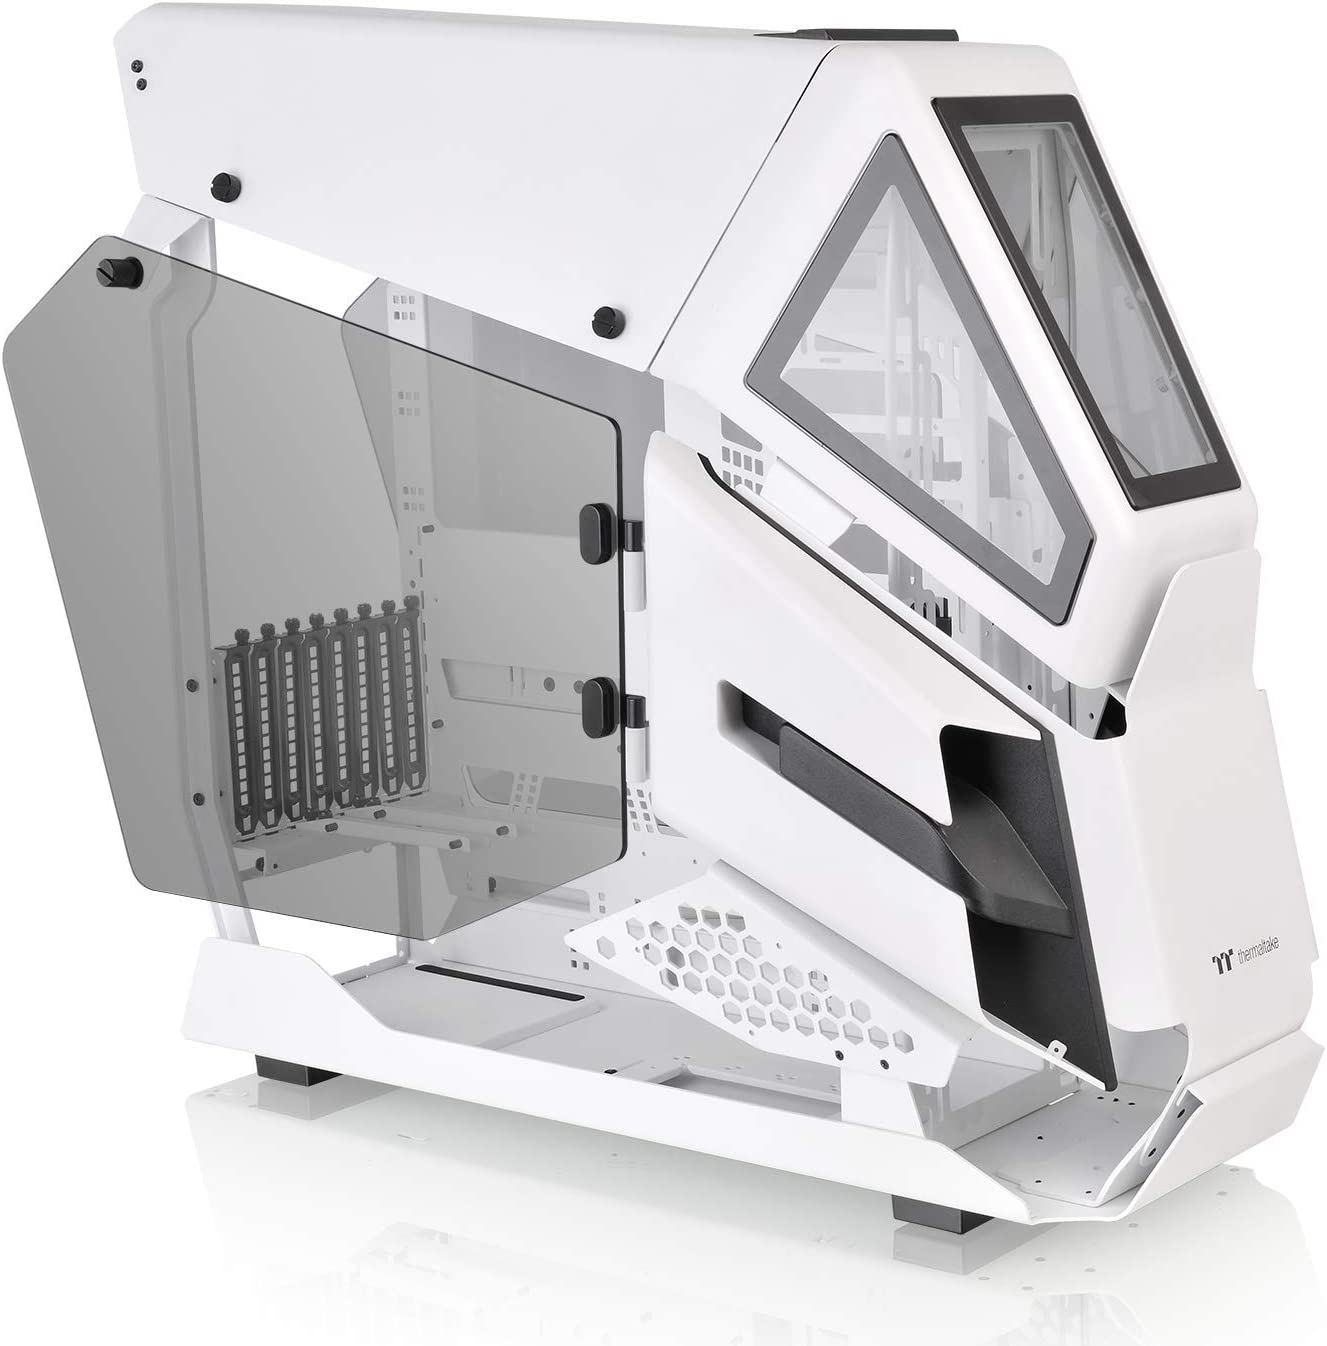 Thermaltake AH T600 Snow Helicopter Styled Open Frame Tempered Glass Swing Door E-ATX Full Tower Case CA-1Q4-00M6WN-00